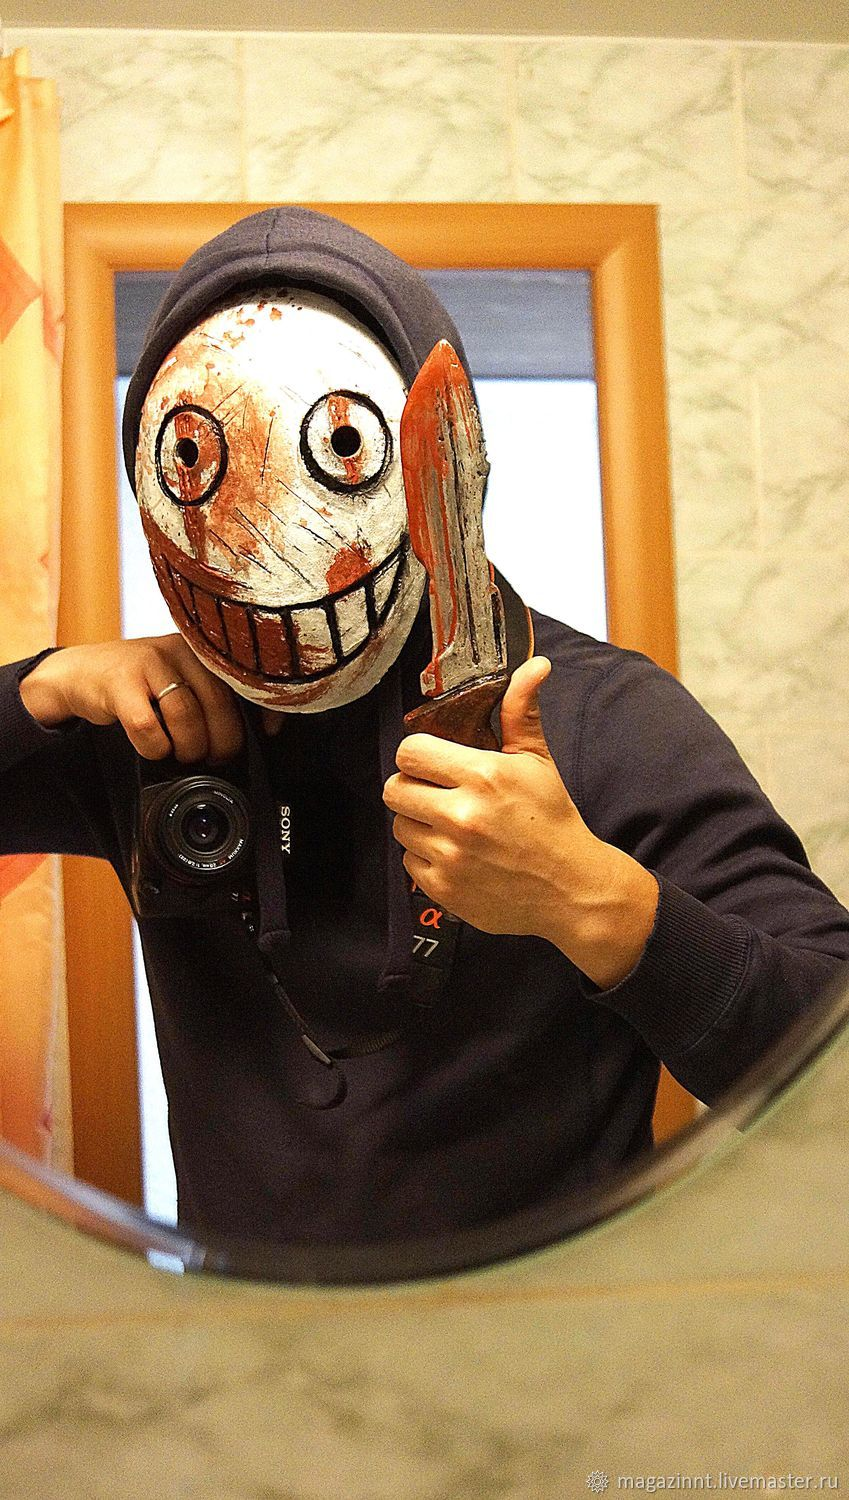 Legion Frank Set : Mask + Knife Dead by daylight, Mask for role playing, Moscow,  Фото №1